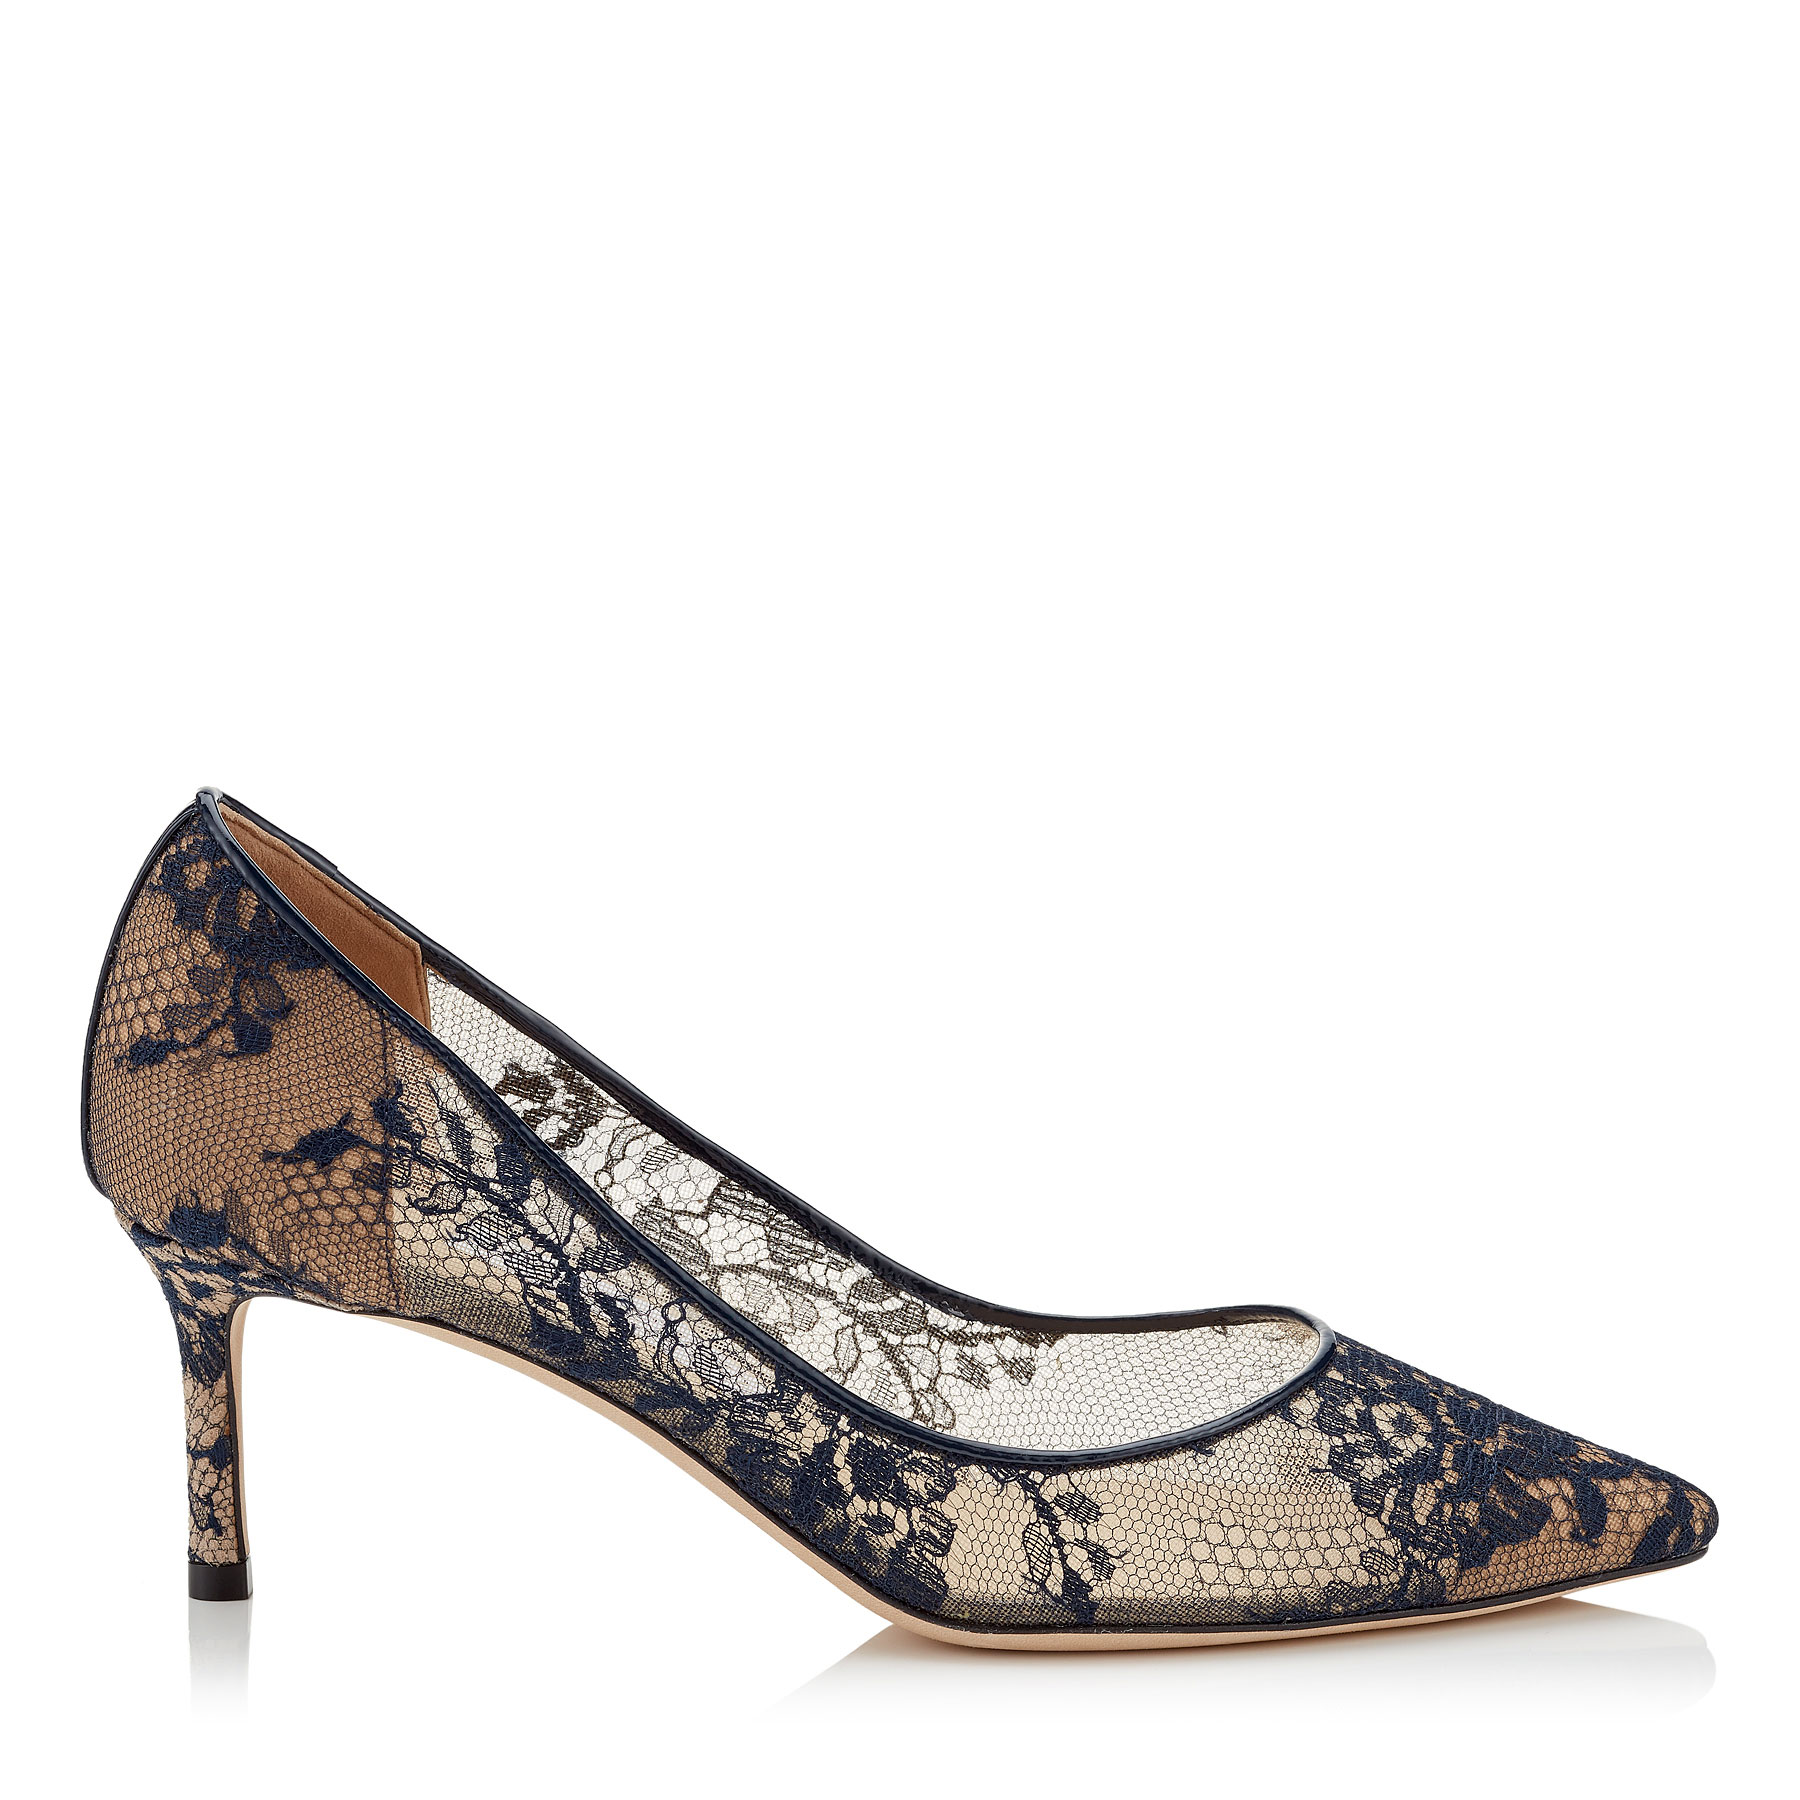 ROMY 60 Navy Lace Pointy Toe Pumps by Jimmy Choo